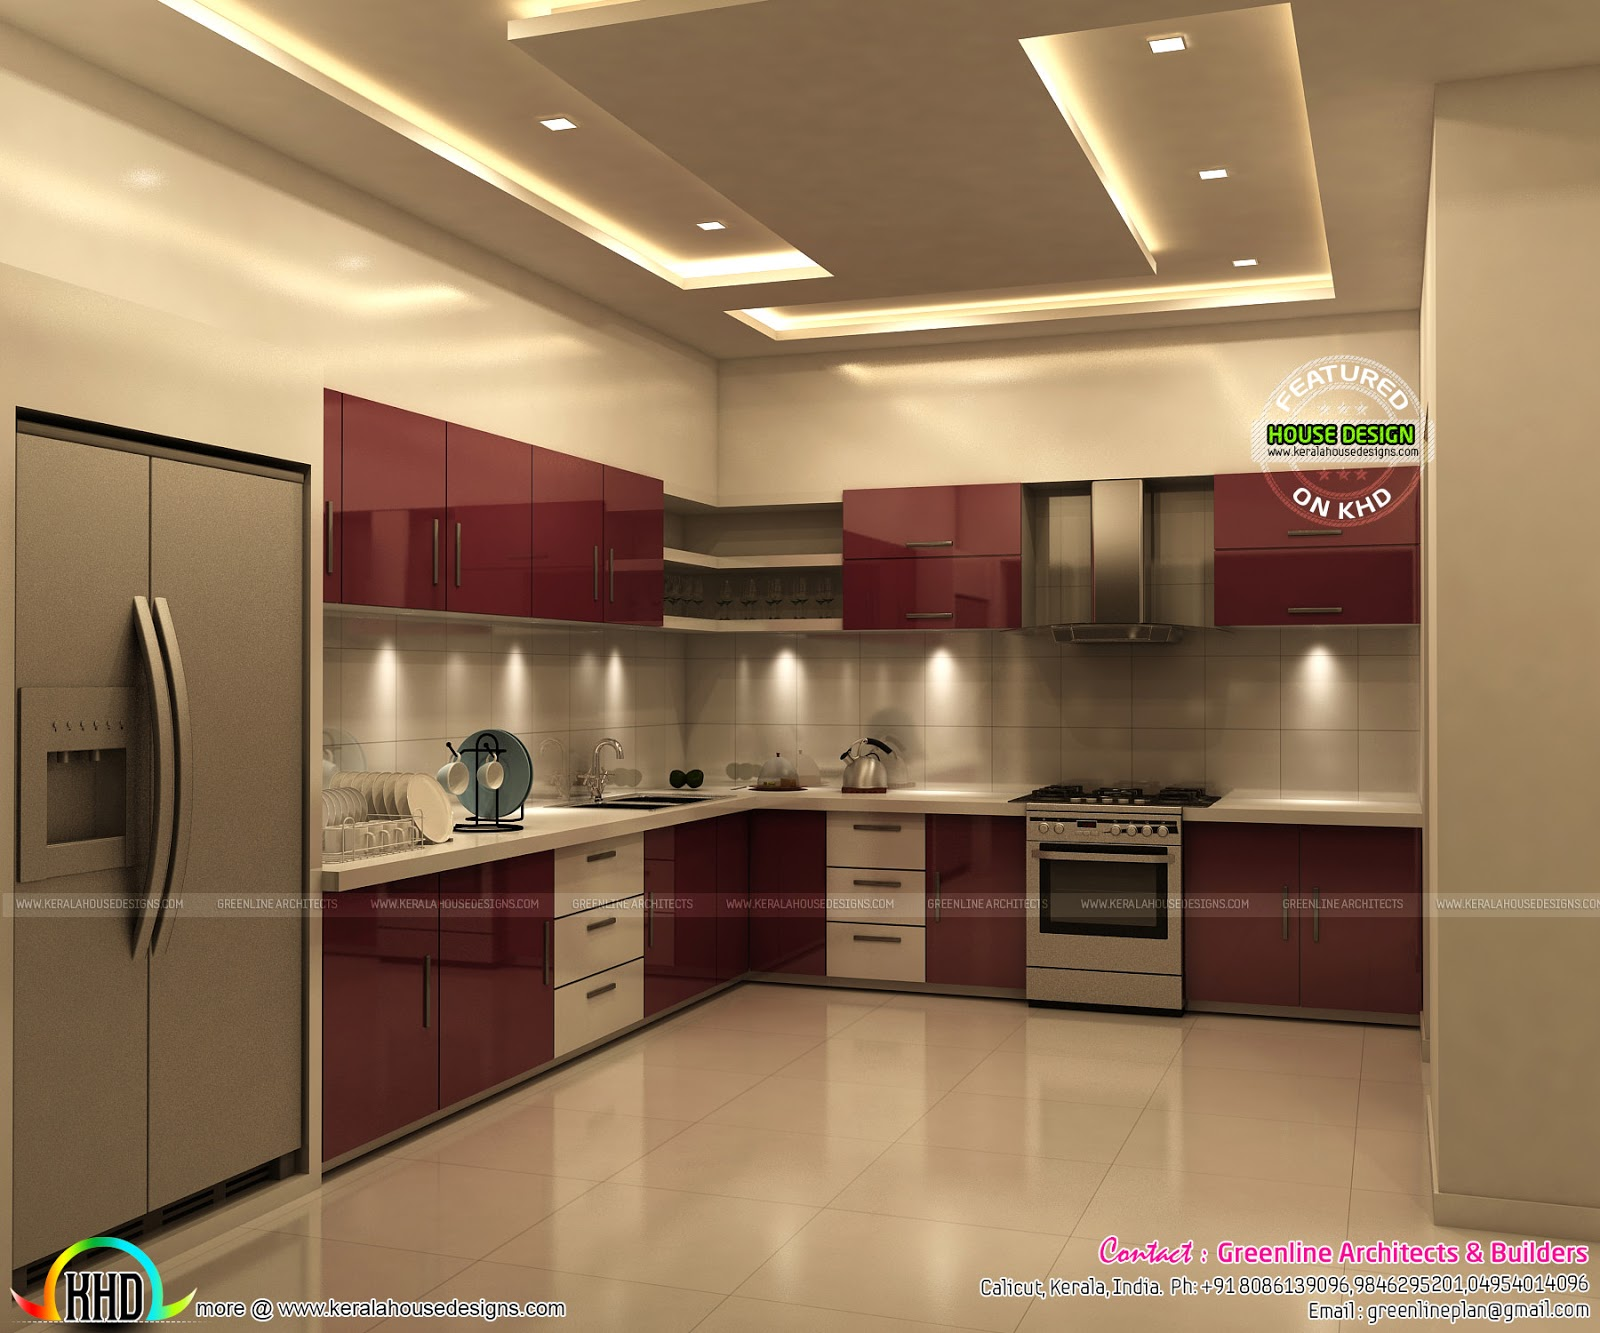 Superb kitchen and bedroom interiors kerala home design for Kitchen interior design pictures